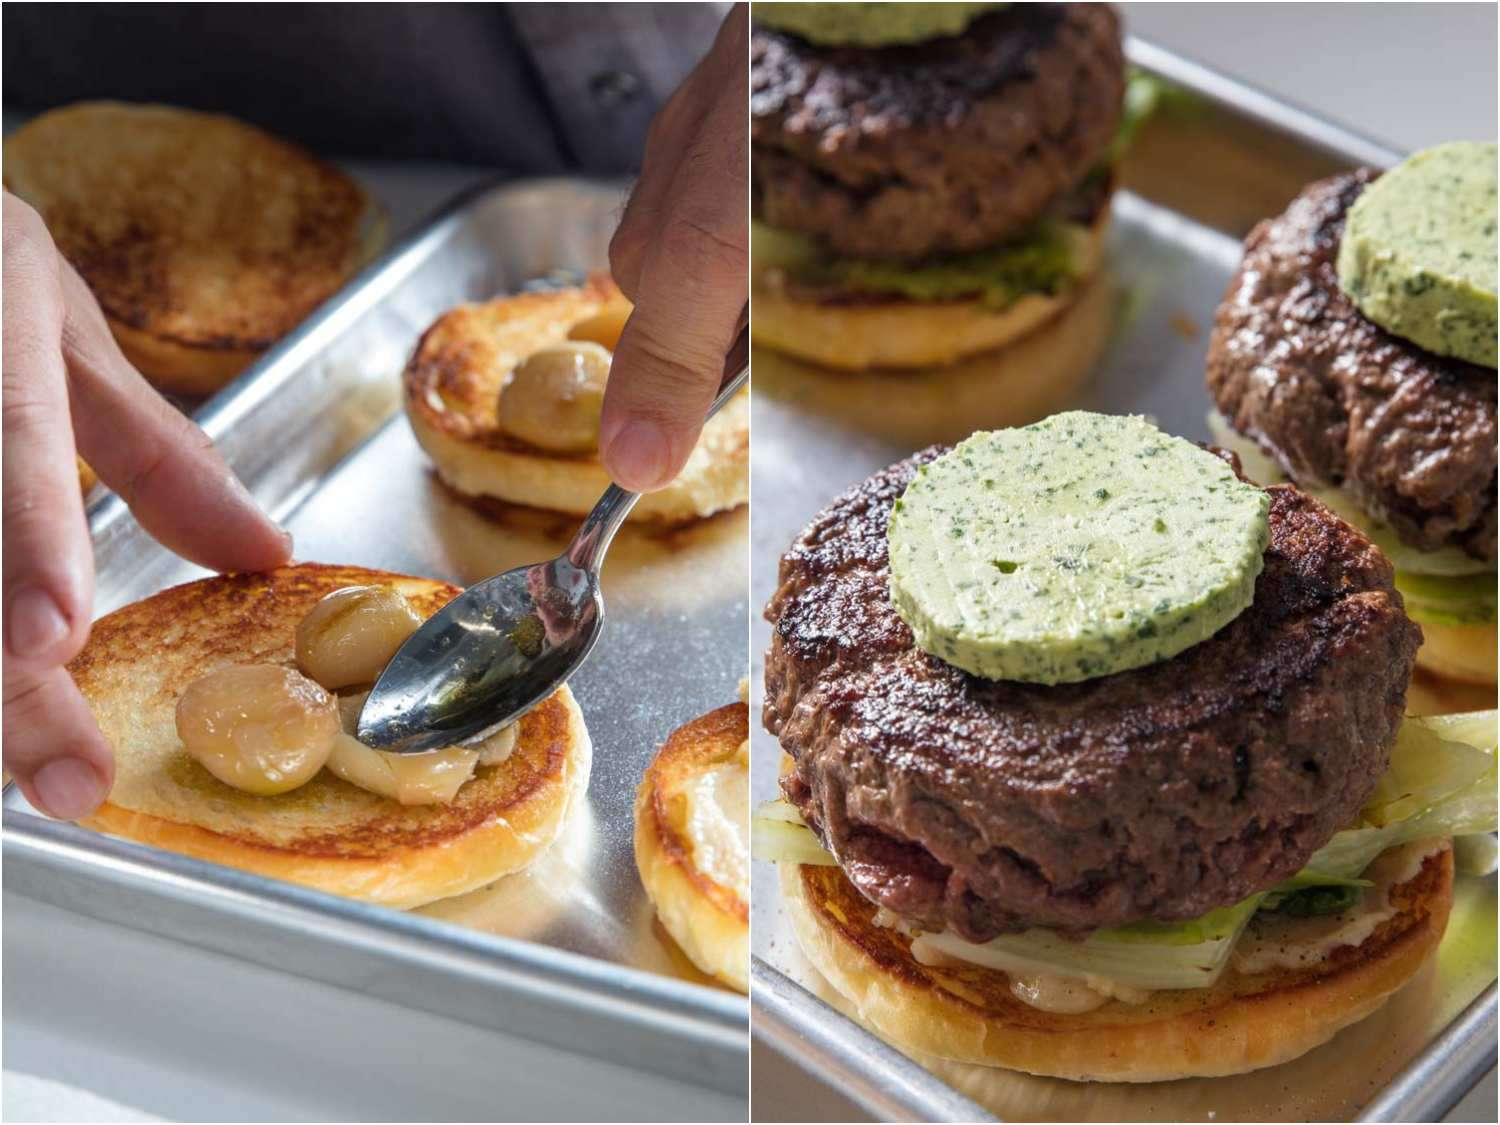 20180703-garlic-confit-hotel-butter-burger-vicky-wasik-collage4